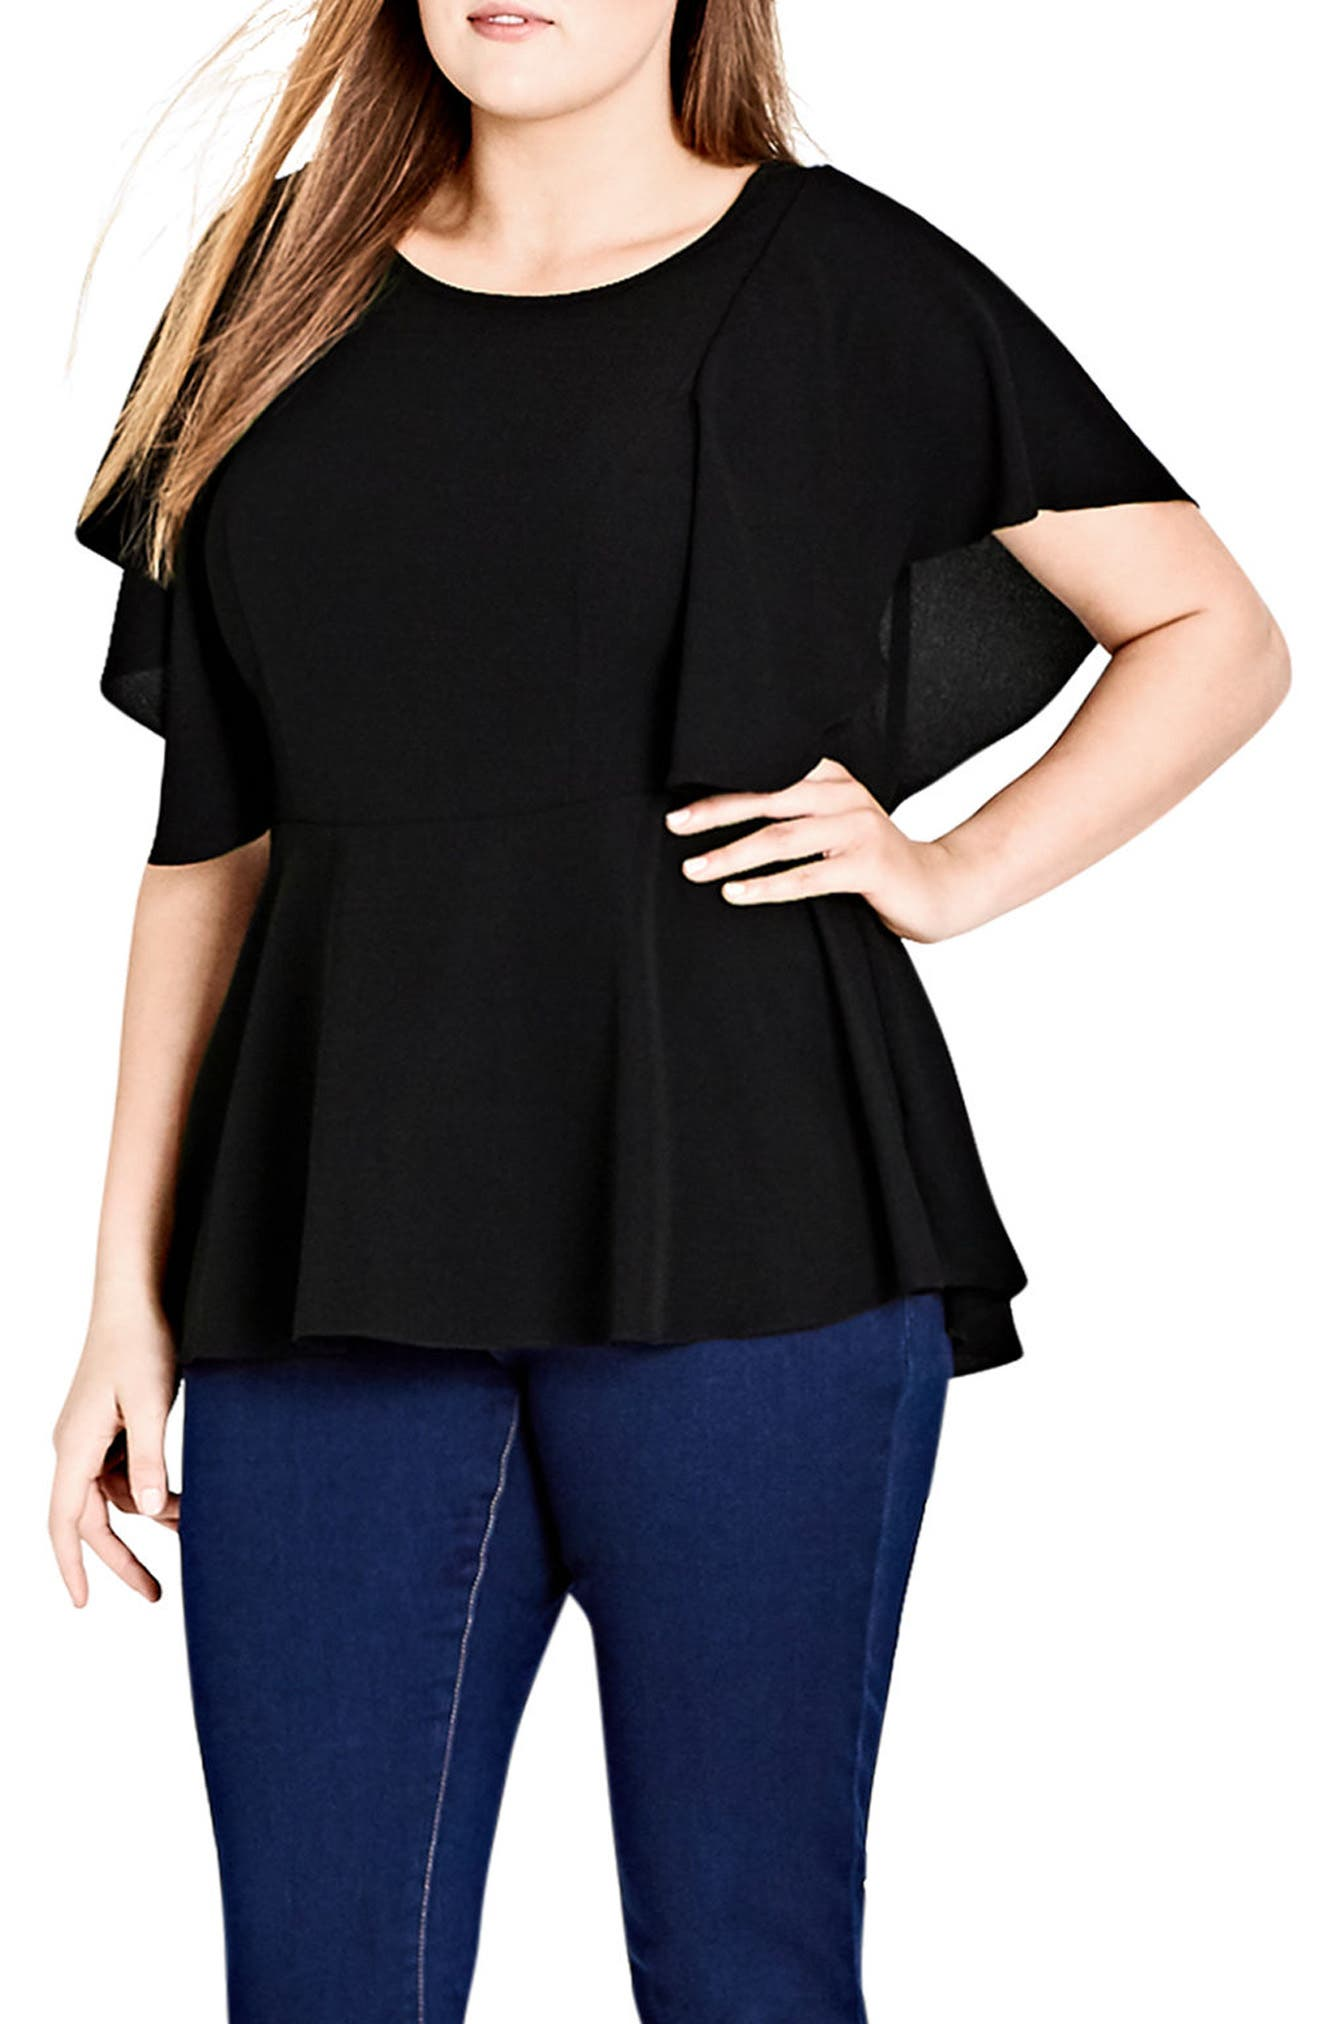 Romantic Mood Top,                         Main,                         color, Black